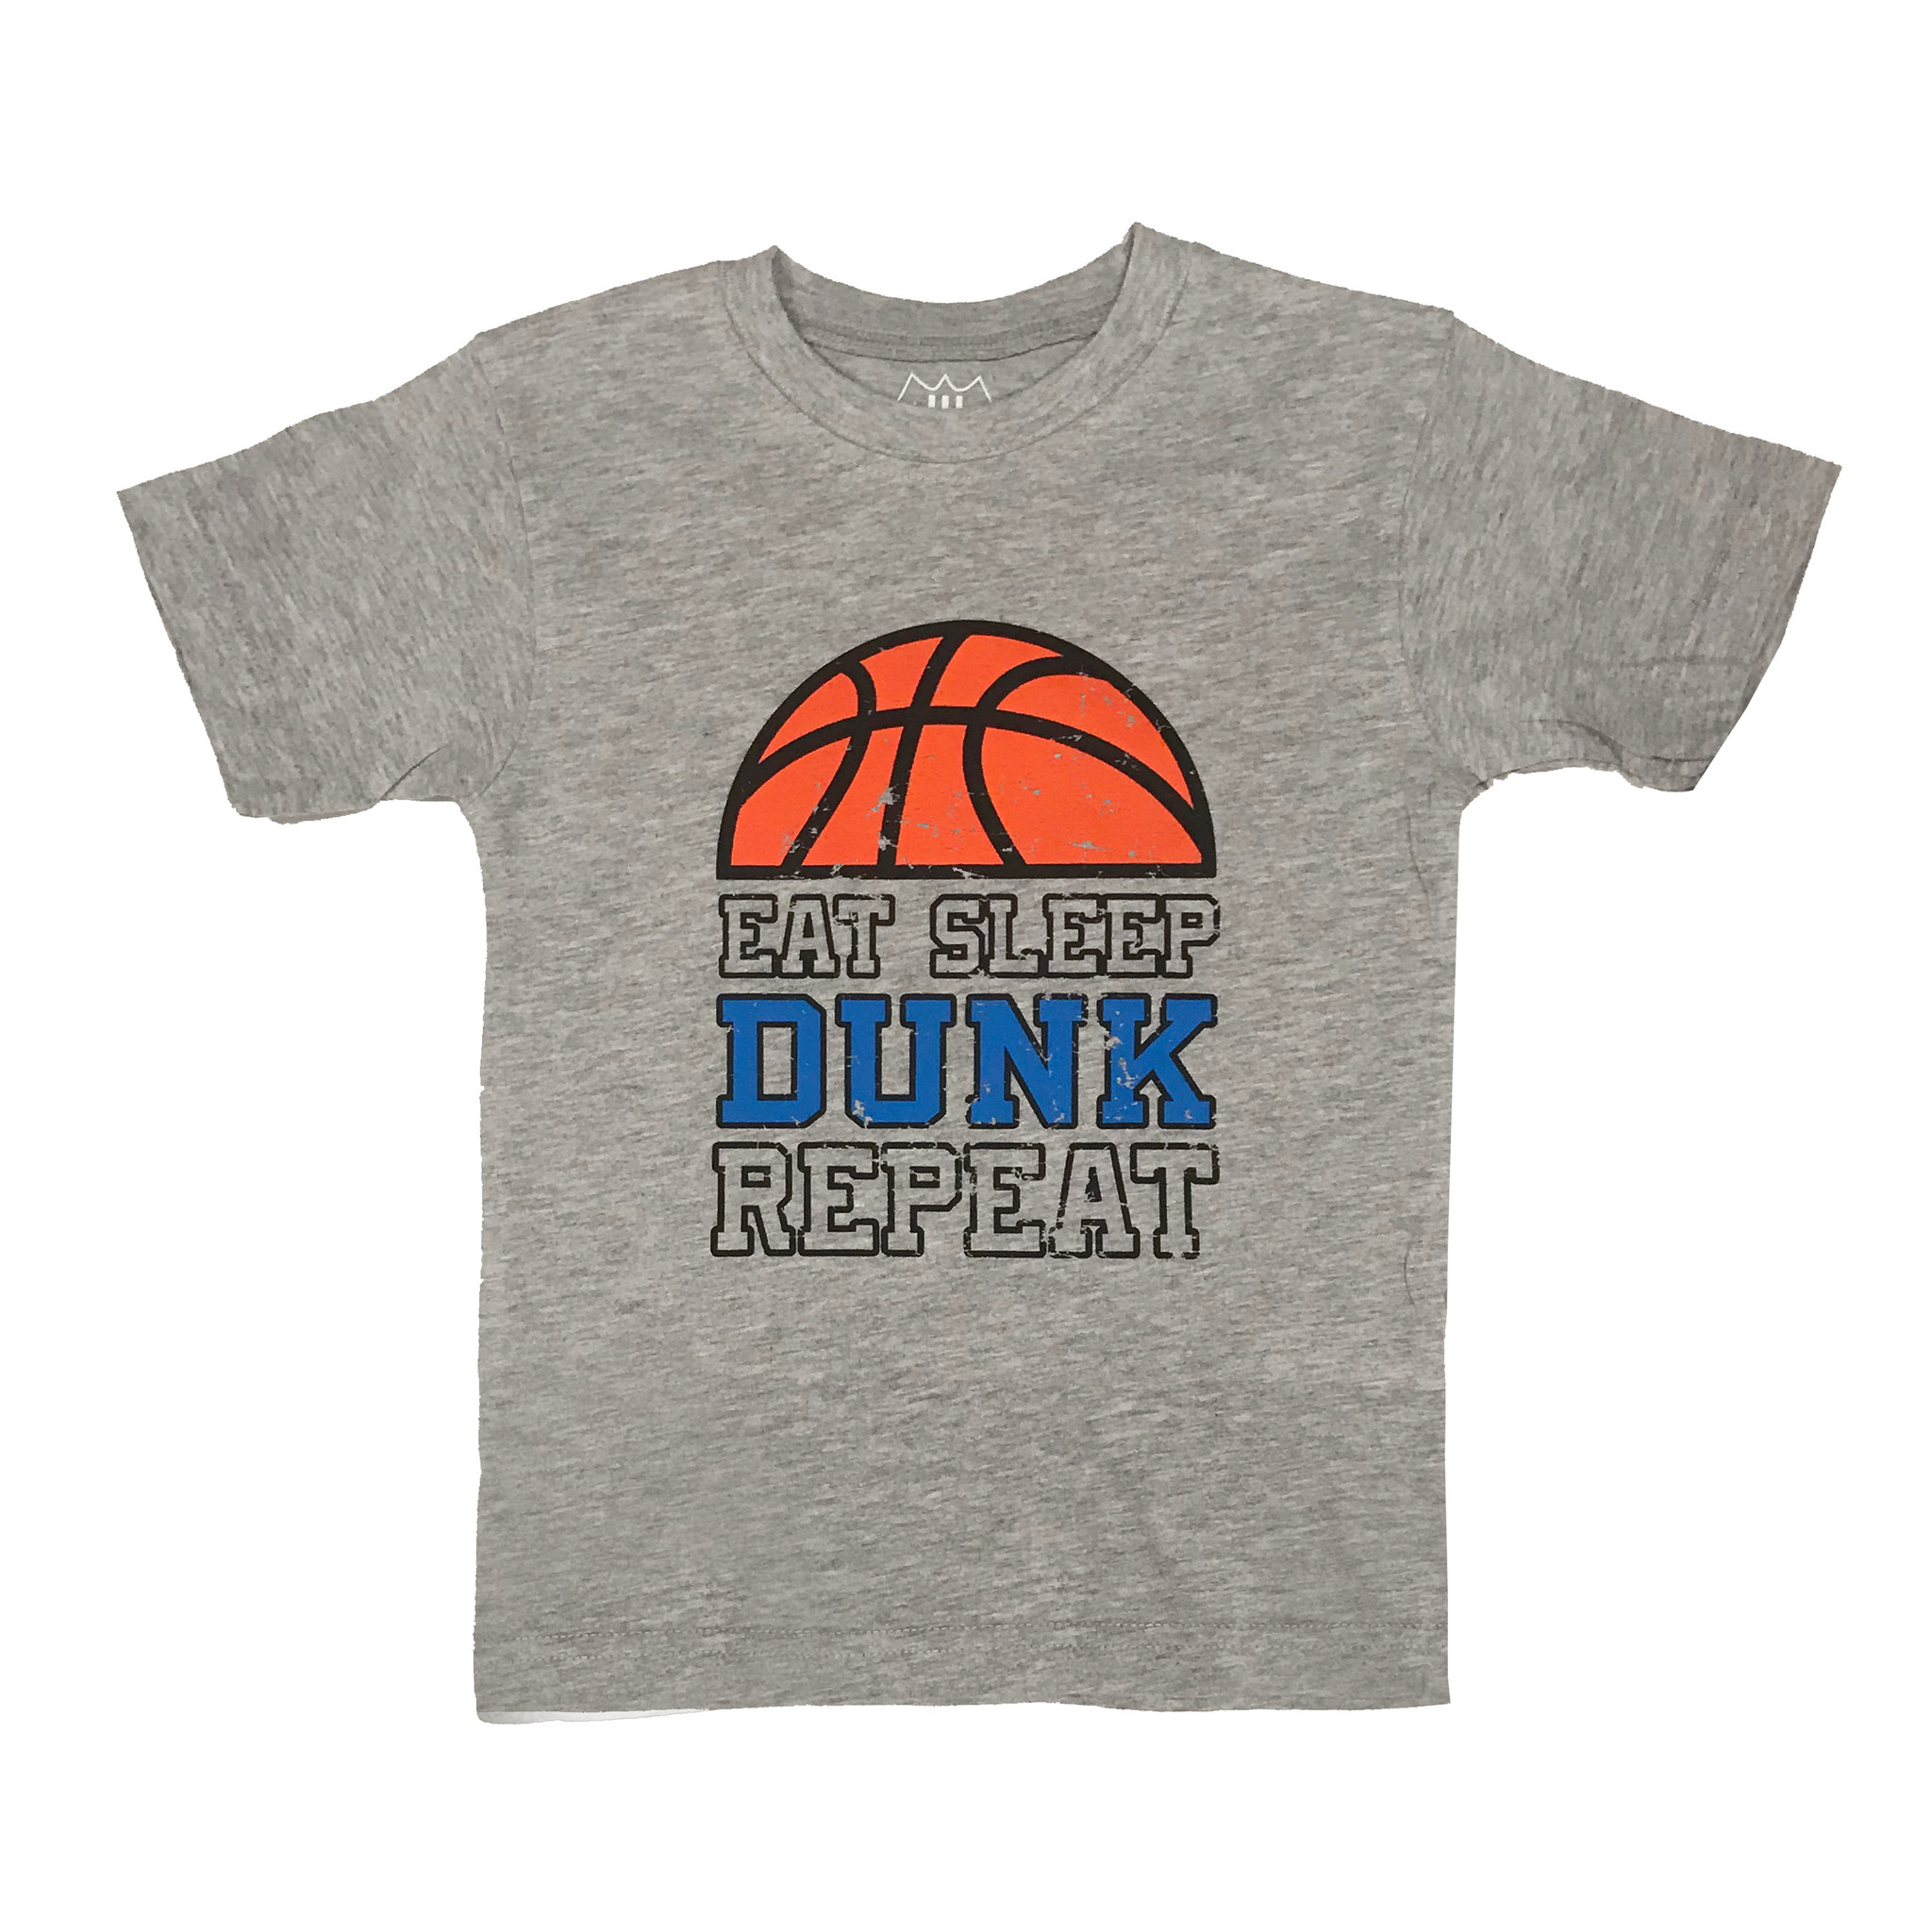 Wes & Willy Grey Eat Sleep Dunk Repeat Tee